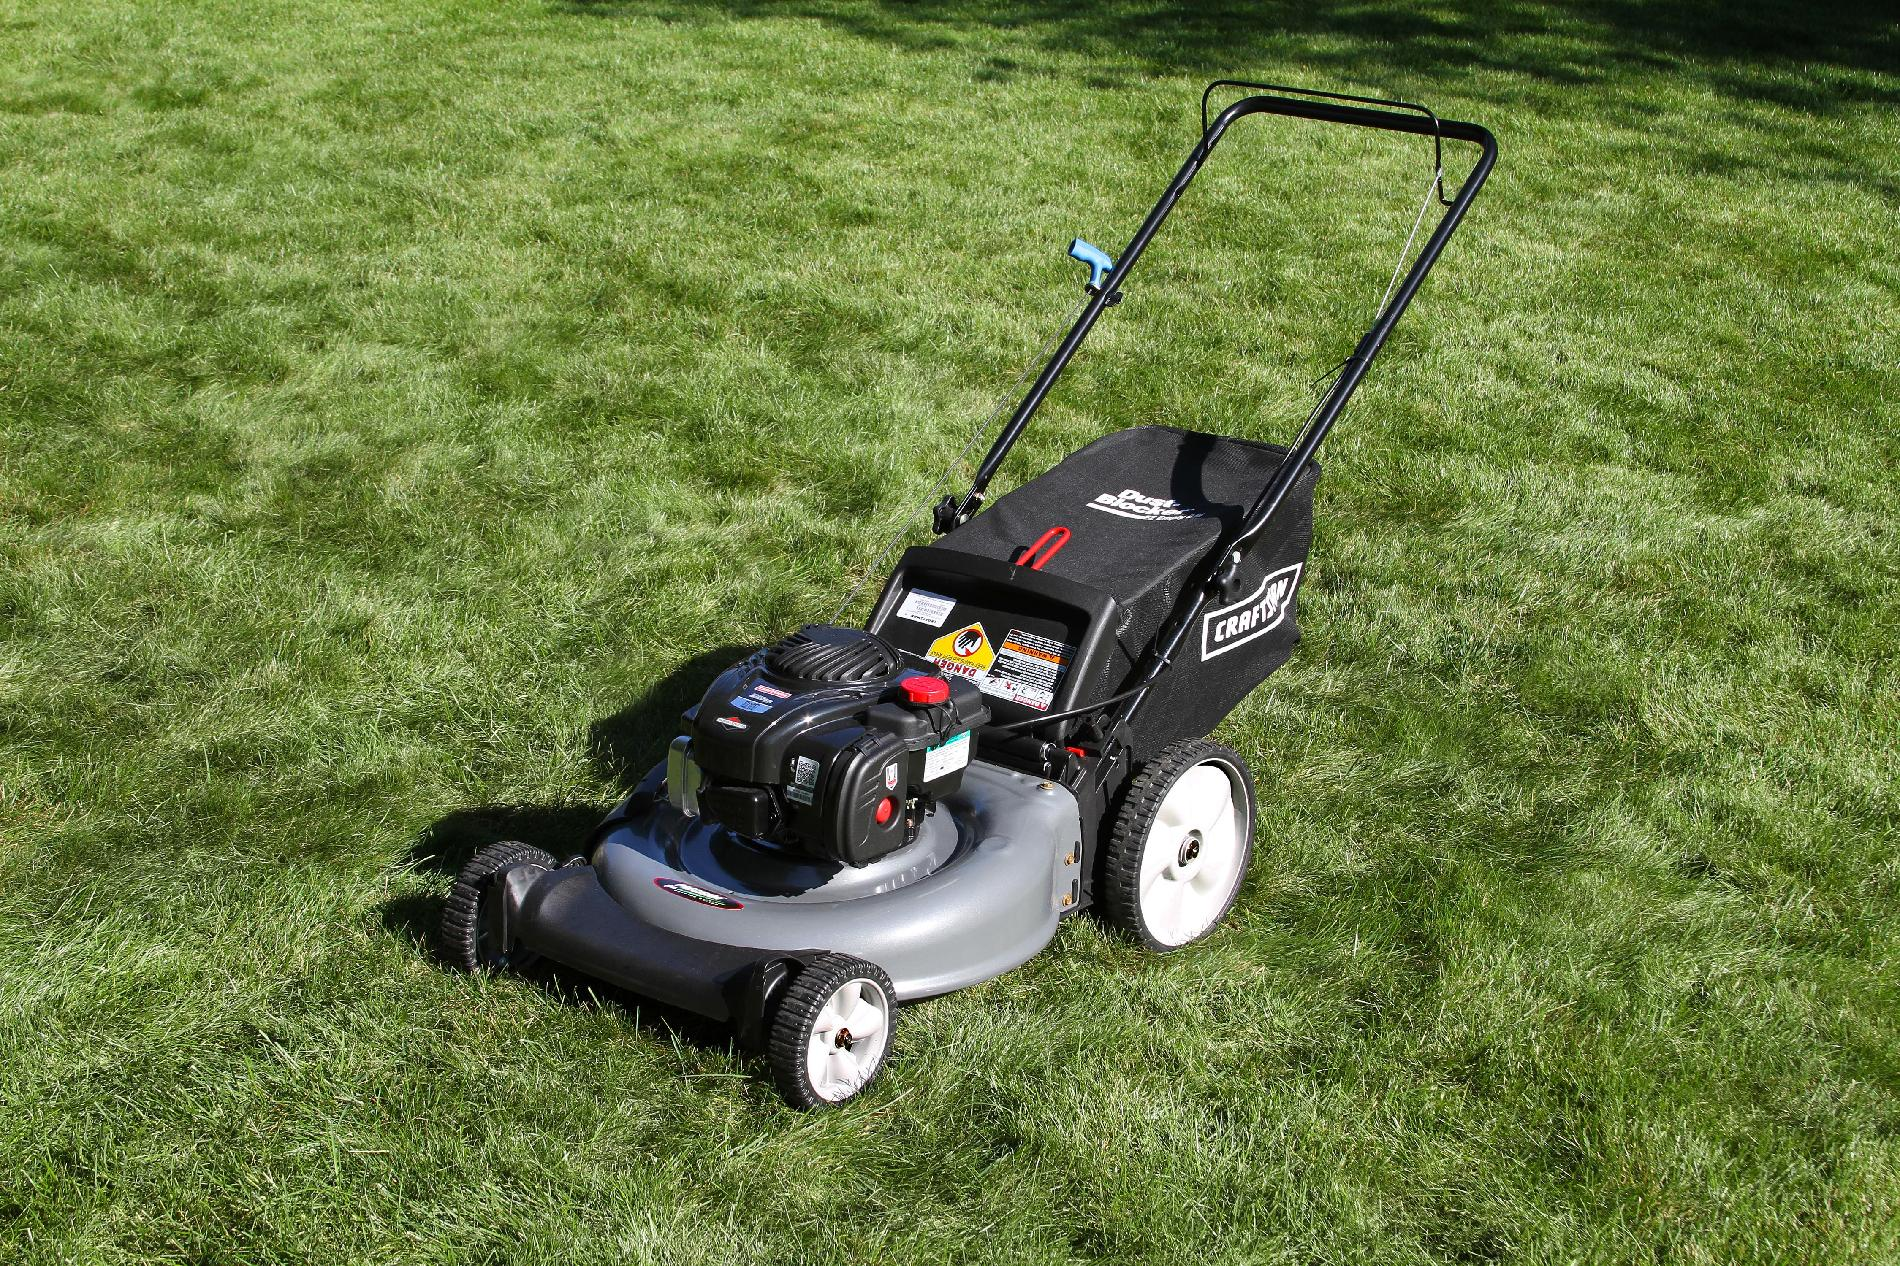 Craftsman 5.0 Engine Torque Rear Bag Push Mower